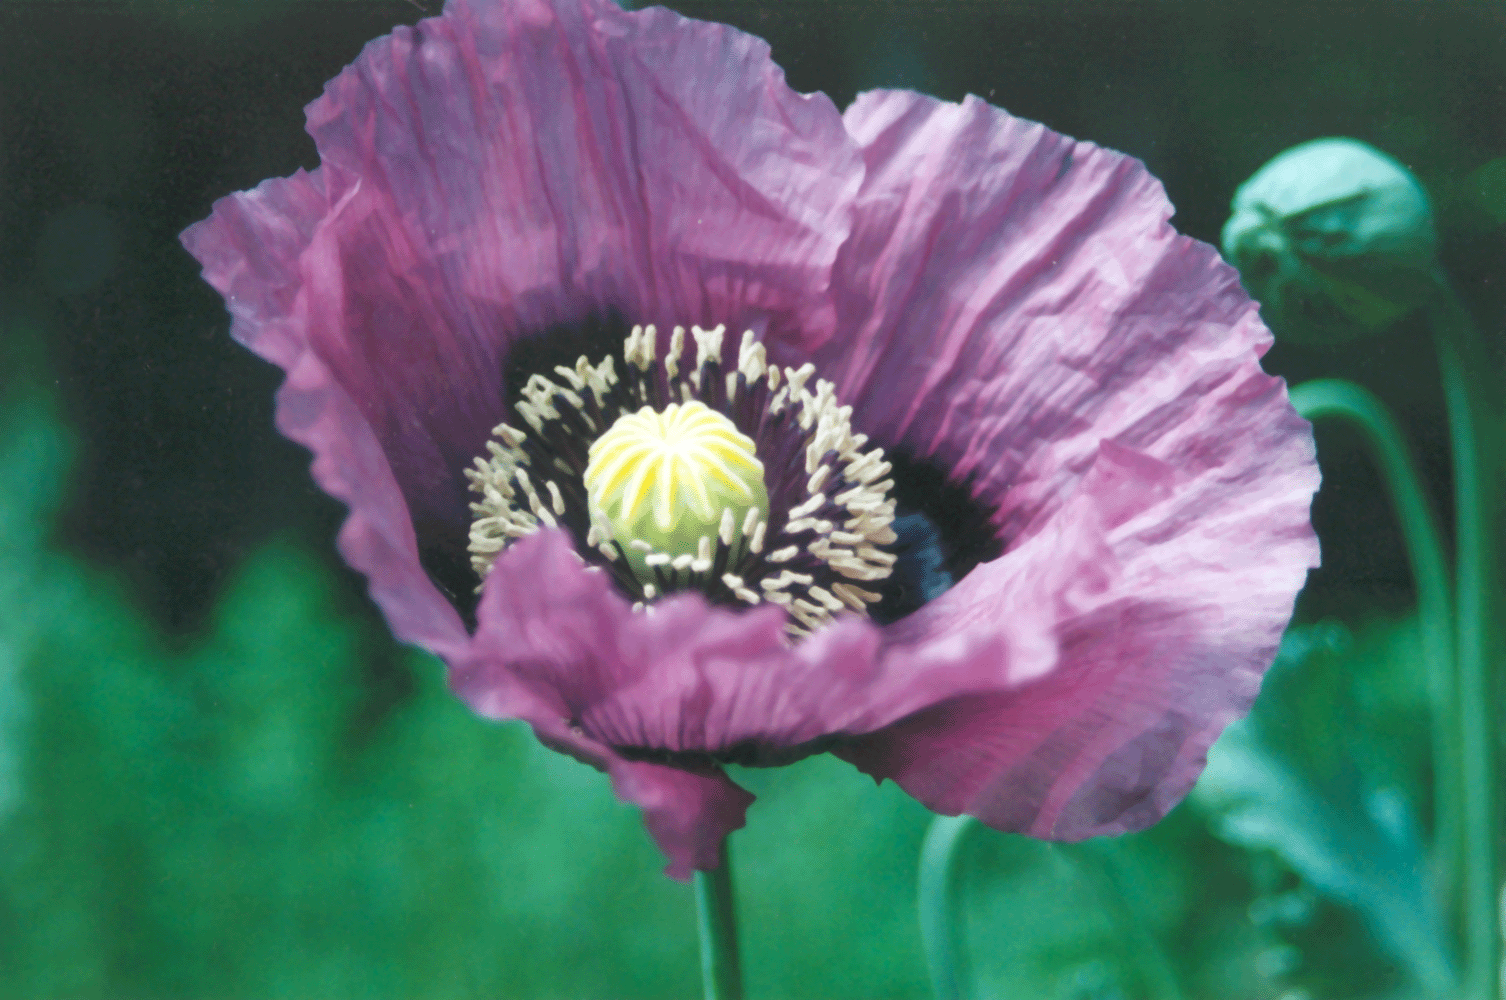 Poppy wikipedia the free encyclopedia examples pinterest poppy wikipedia the free encyclopedia mightylinksfo